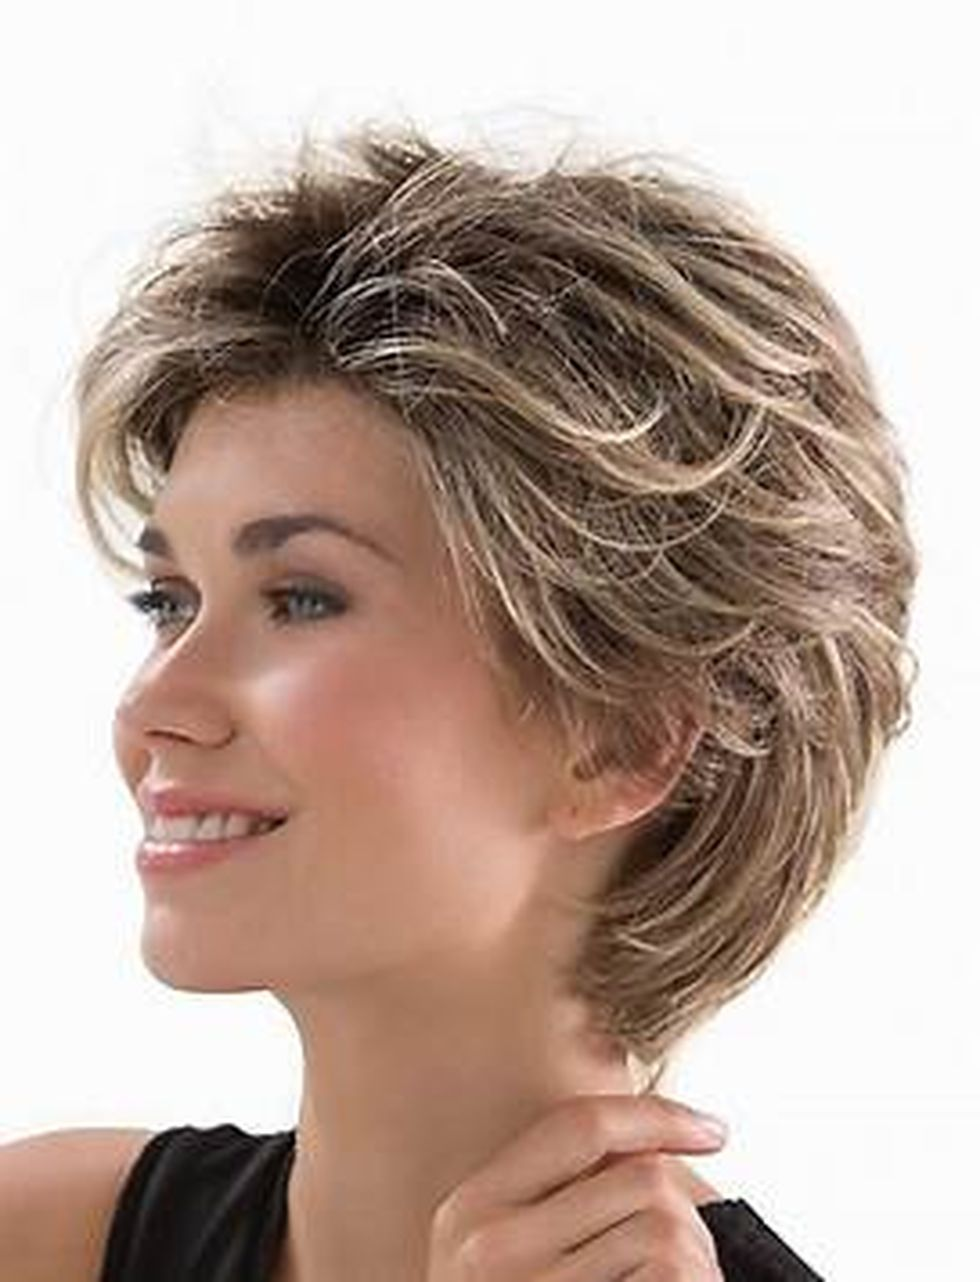 Fabulous Over 50 Short Hairstyle Ideas 6 Fashion Best